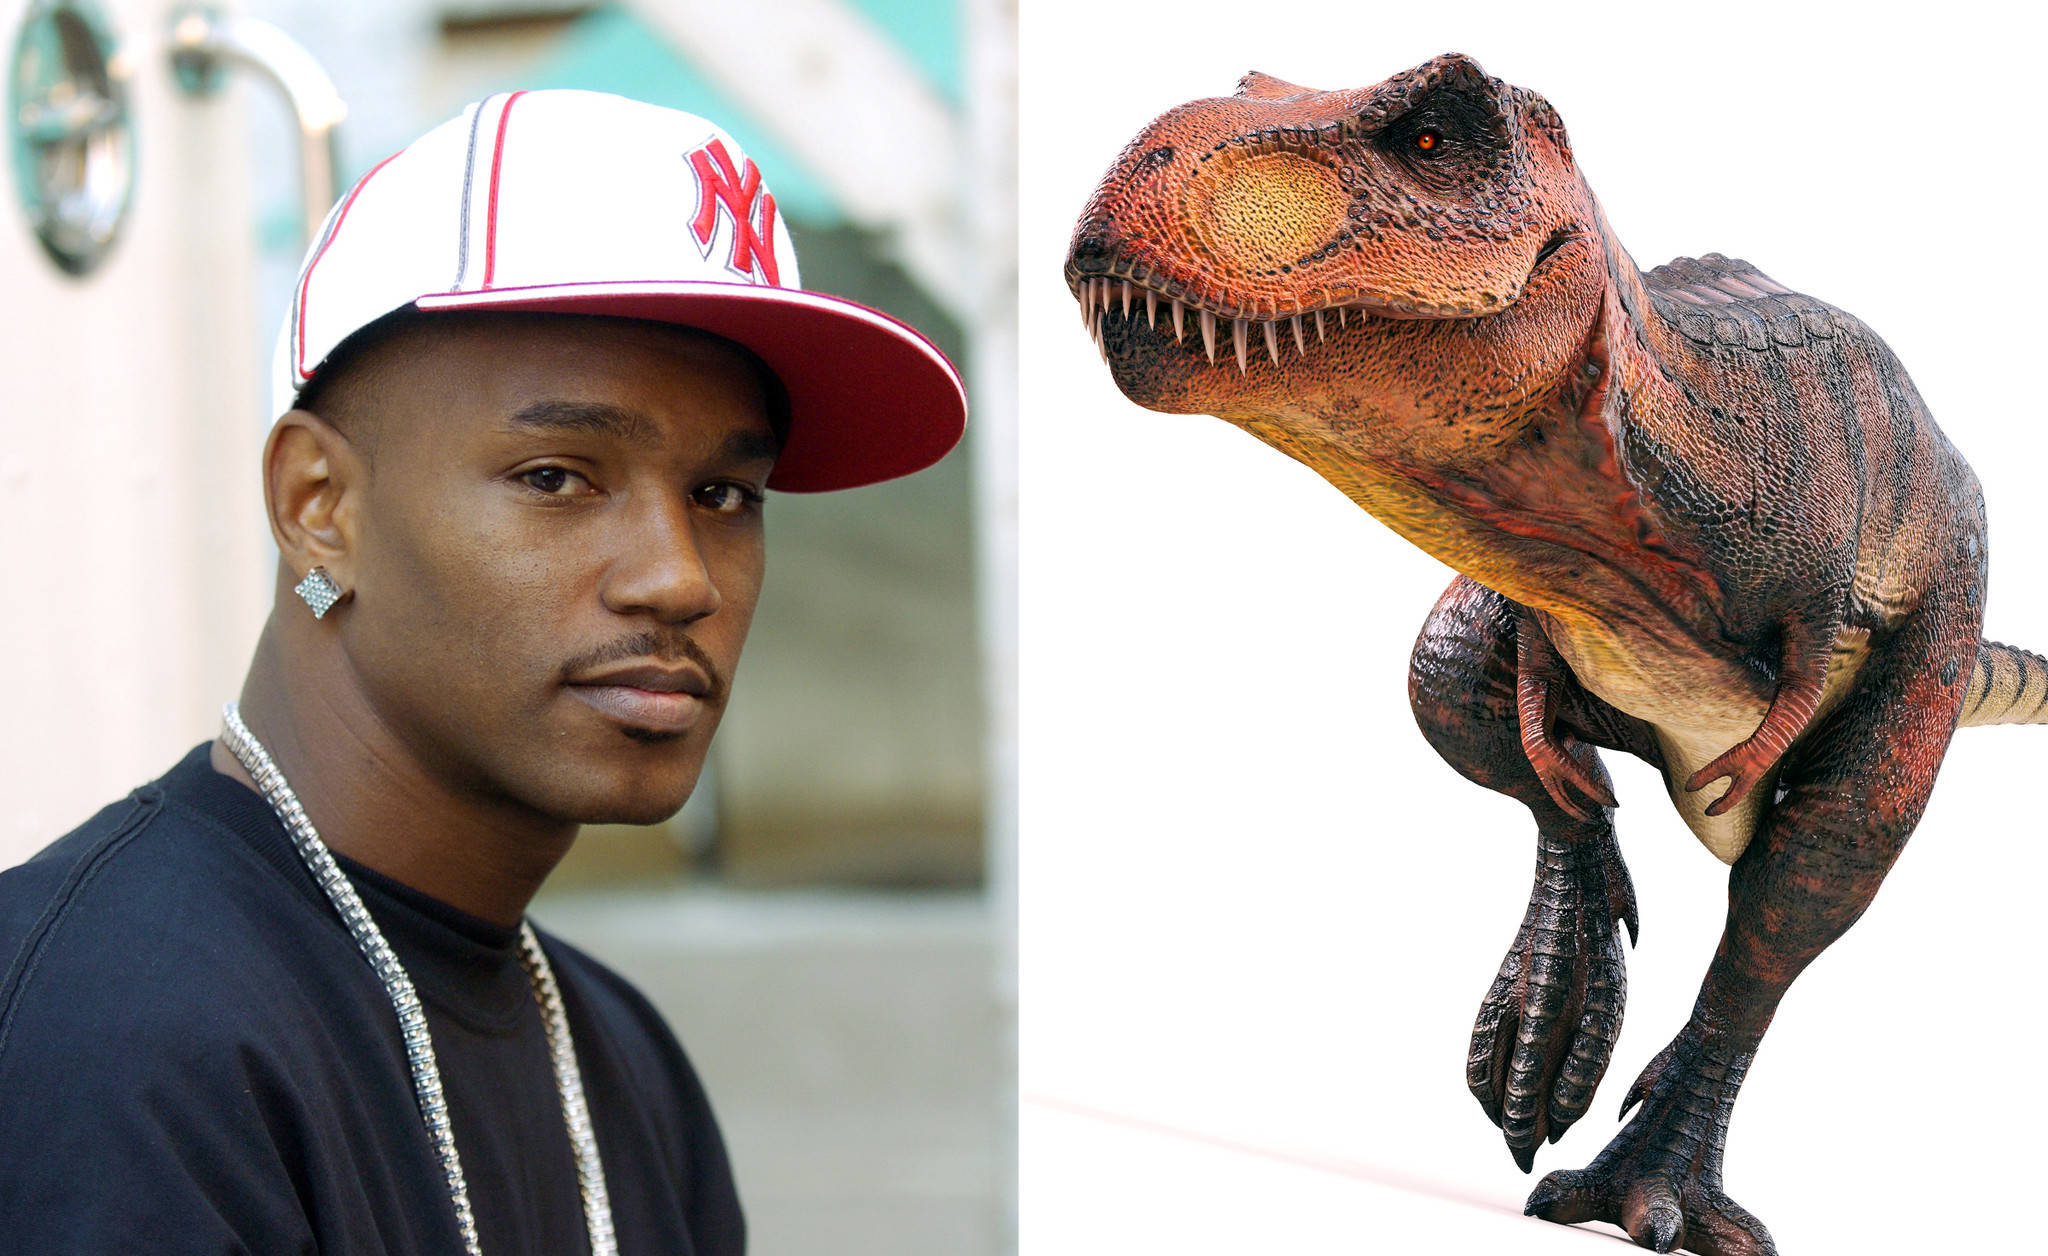 Cam'ron on dinosaurs: 'There's no proof' they existed